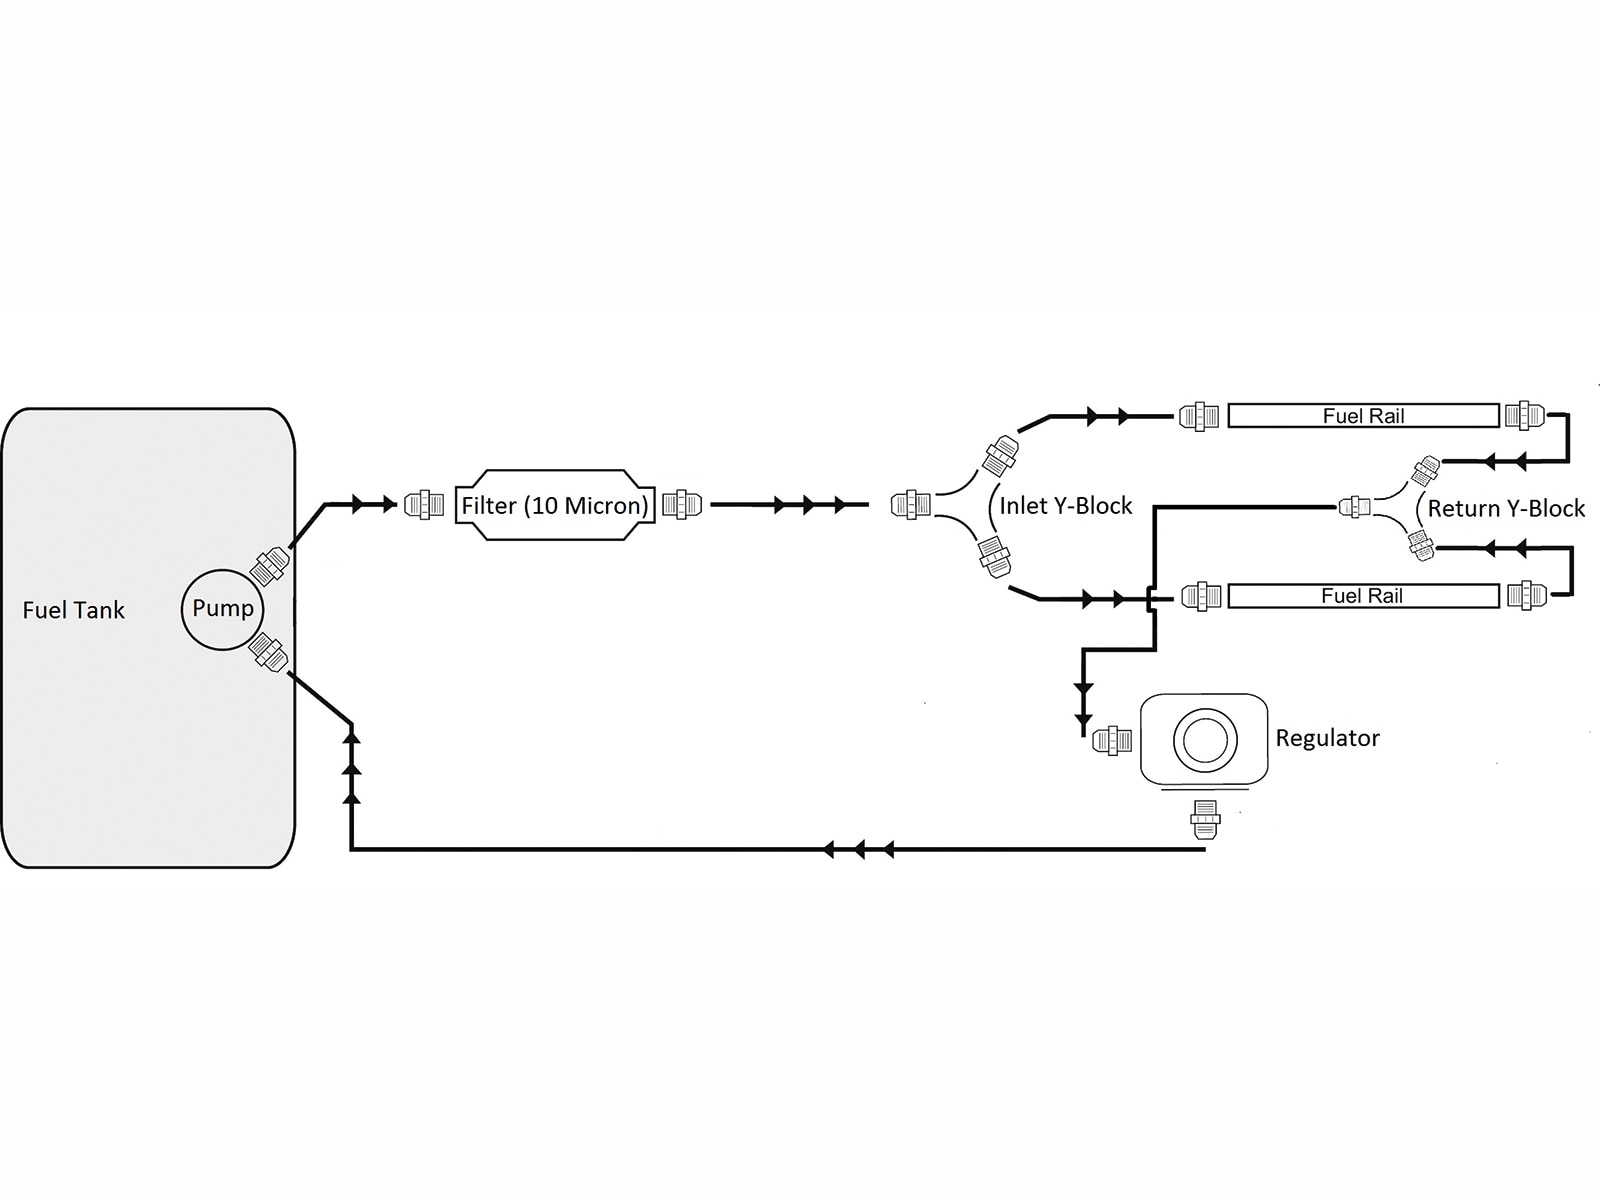 1990 ford fuel system diagram 99 grand cherokee stereo wiring efi line routing elsavadorla